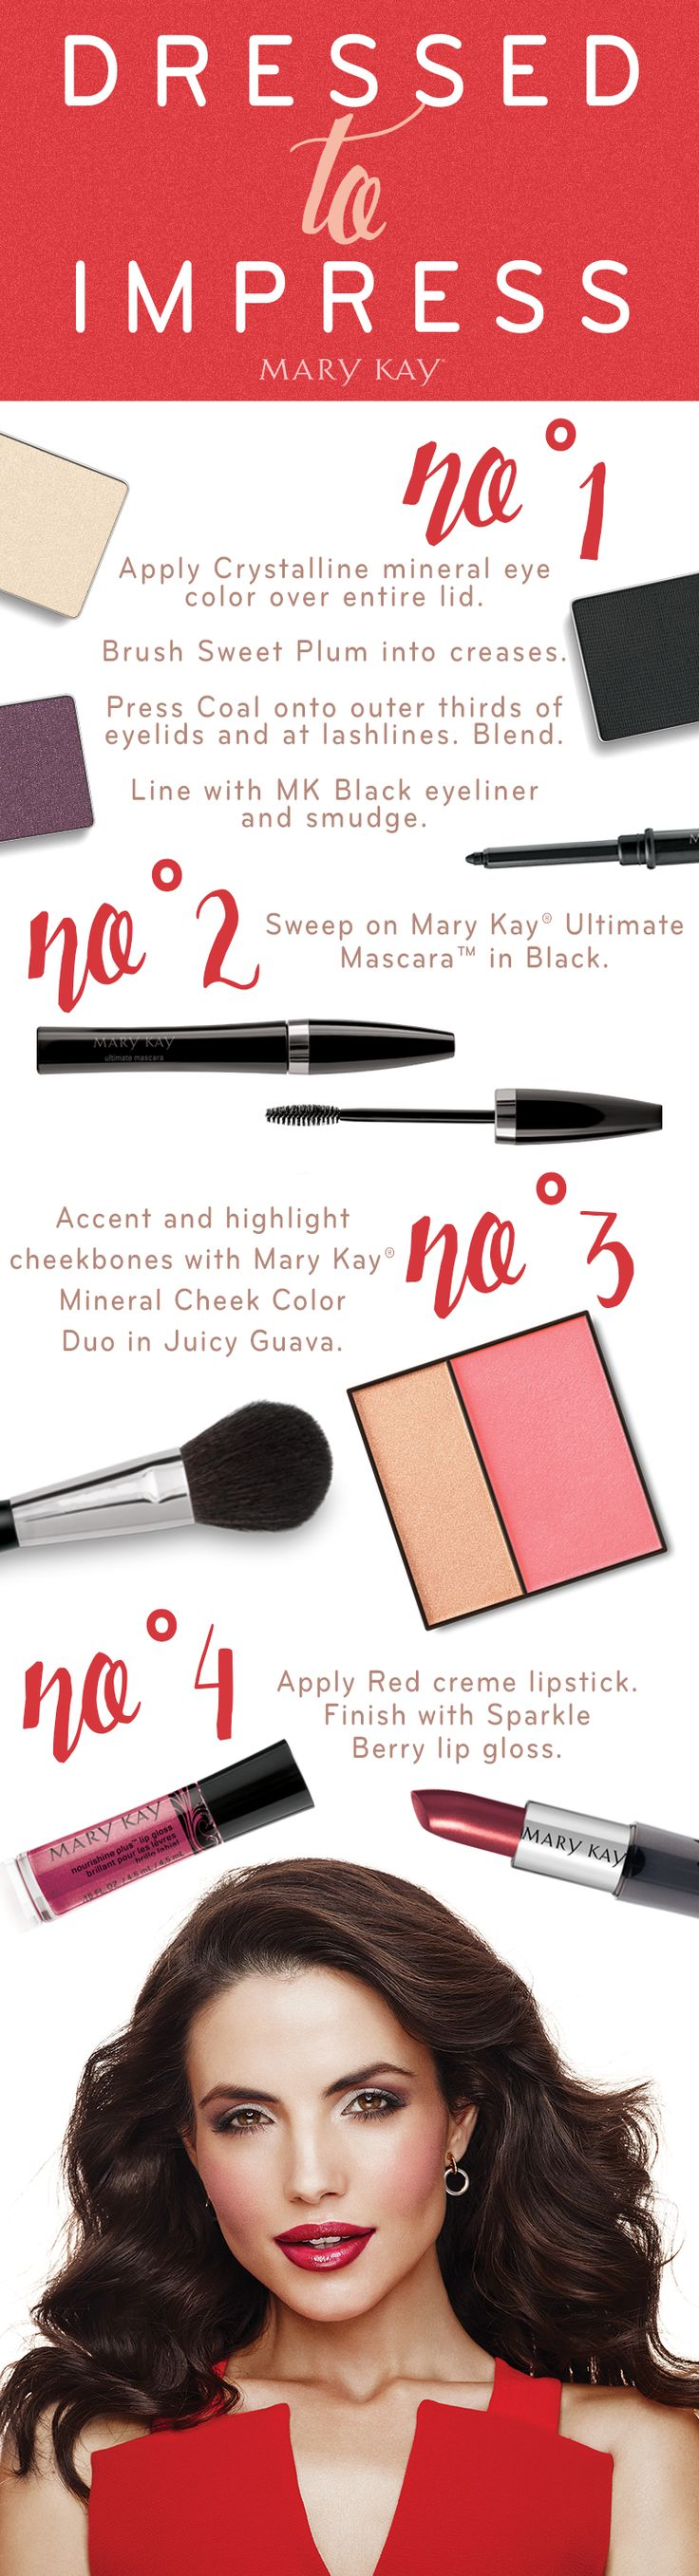 This weekend, get dressed to impress! Swipe on a sultry red lip with Mary Kay® Creme Lipstick in Red and NouriShine Plus® Lip Gloss in Sparkle Berry and watch jaws drop. http://www.marykay.com/lisabarber68 Call or text 386-303-2400